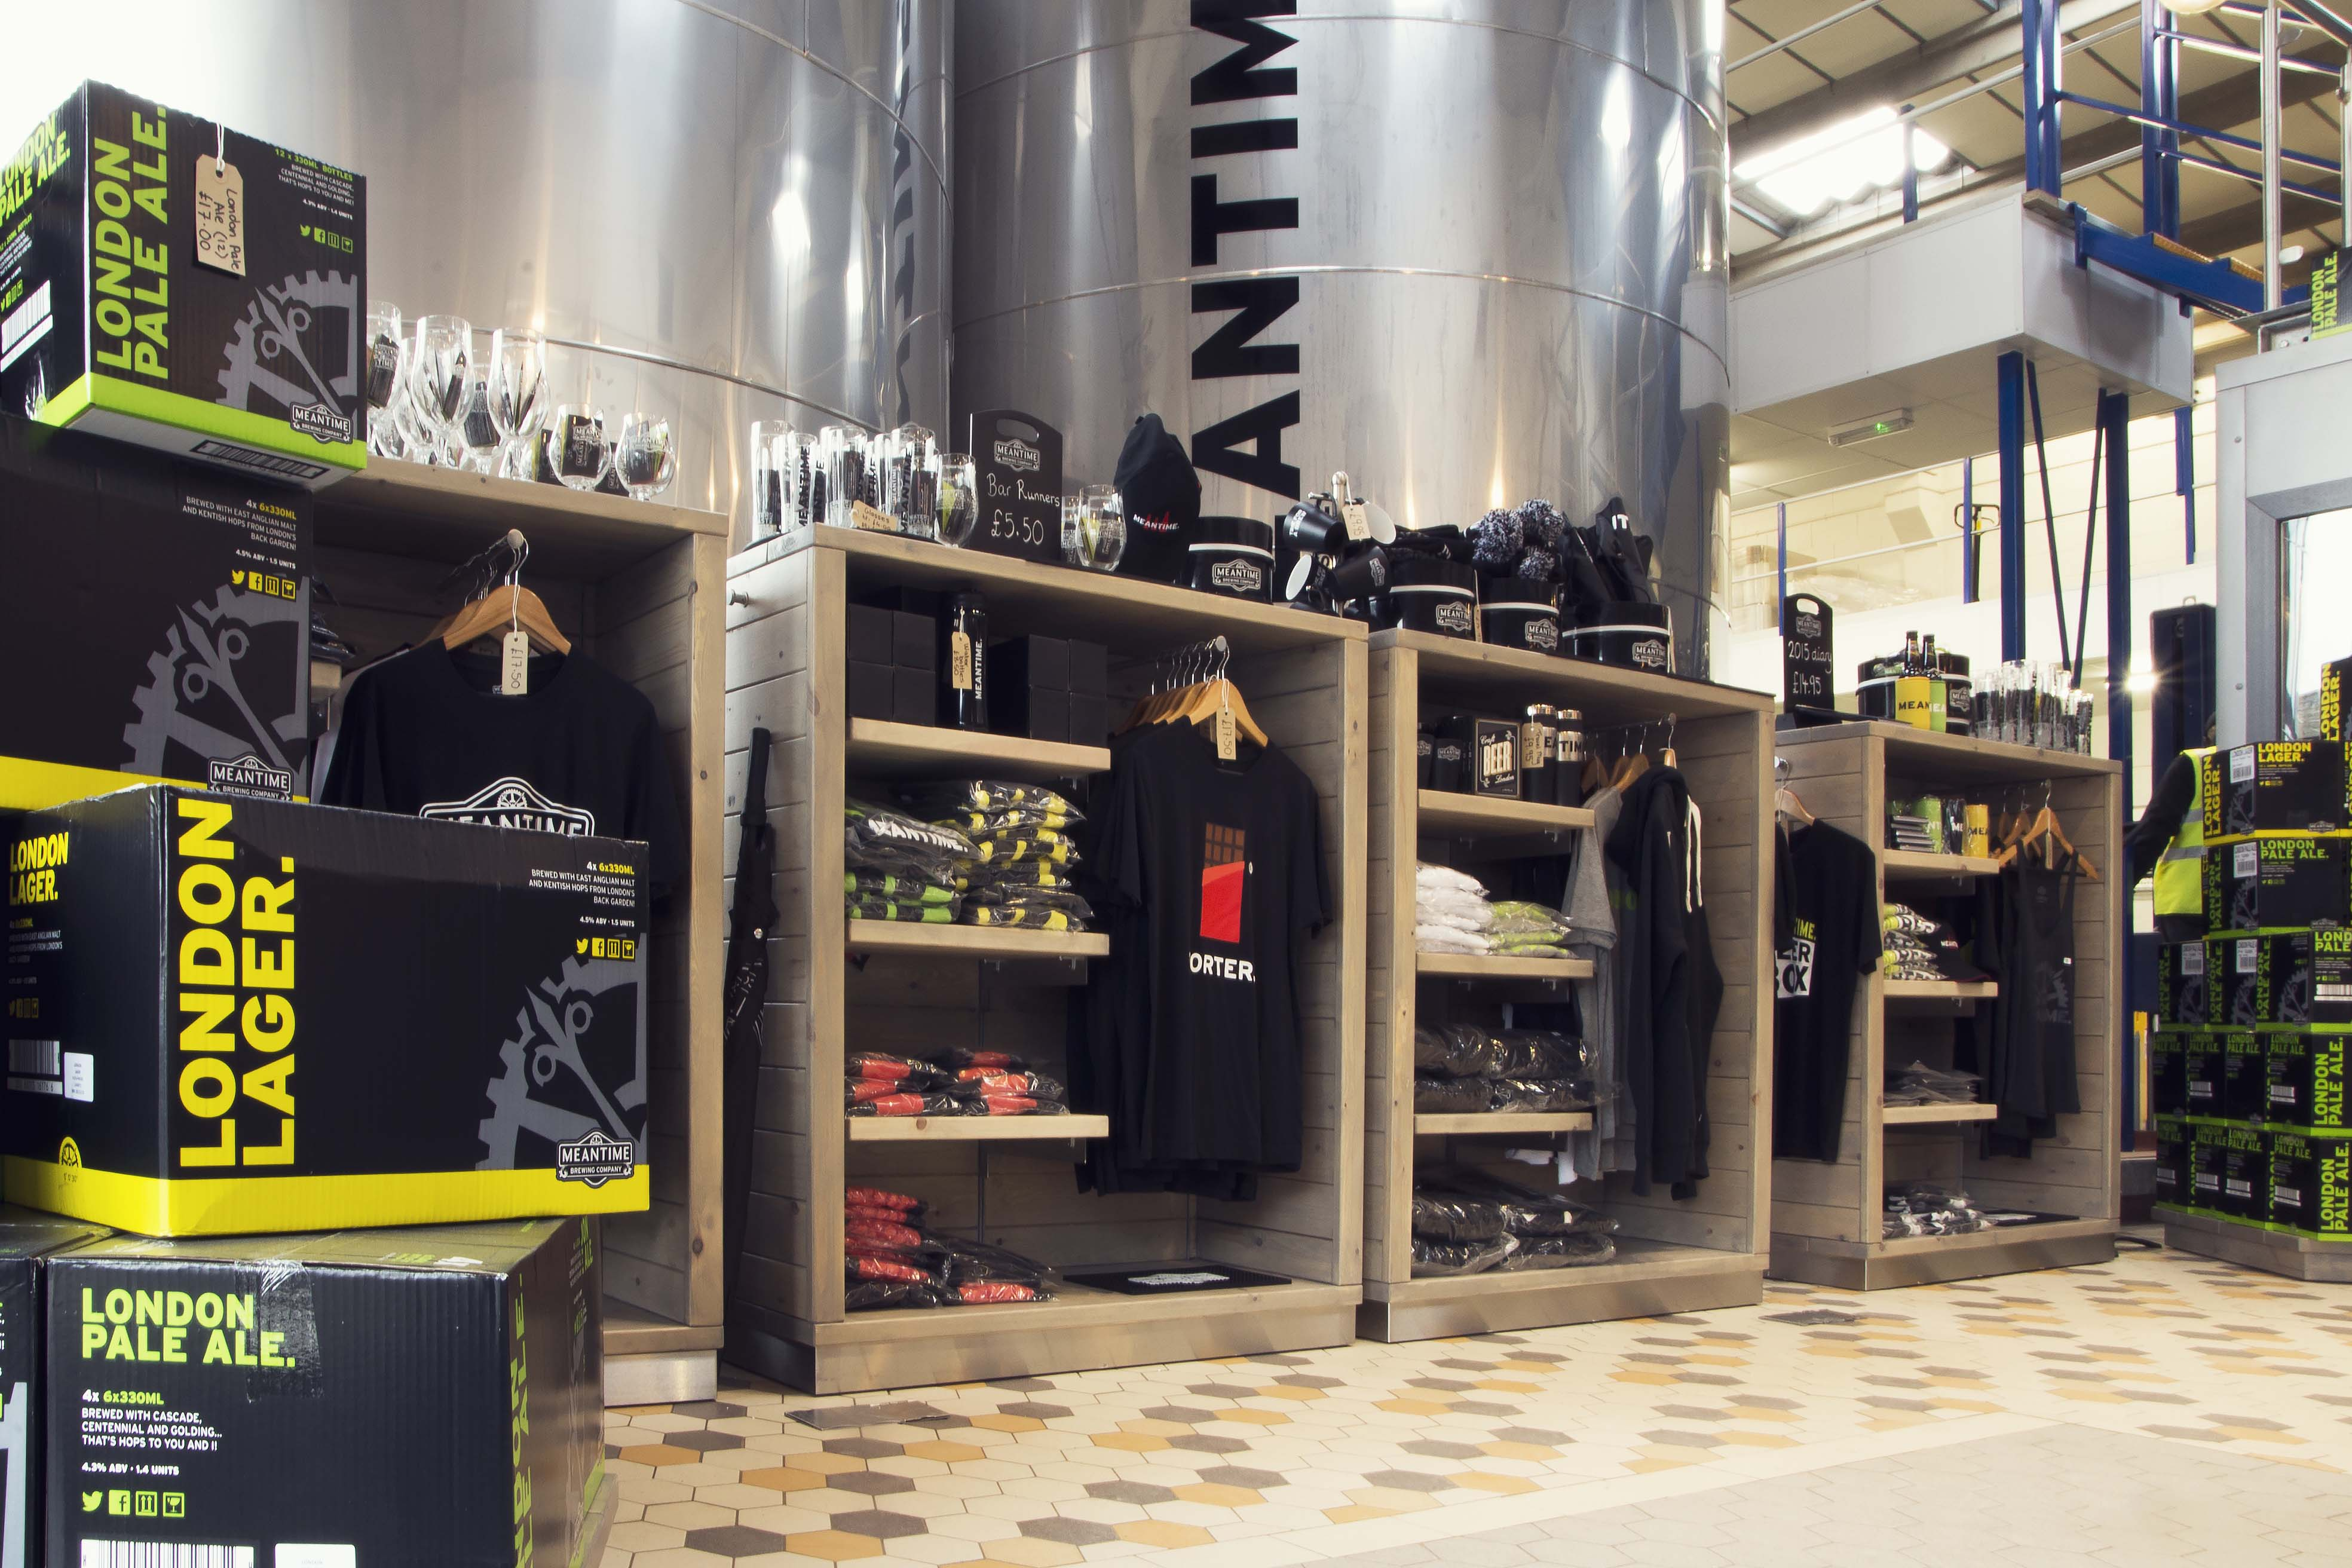 Meantime Brewing Company accepts offer to join SABMiller